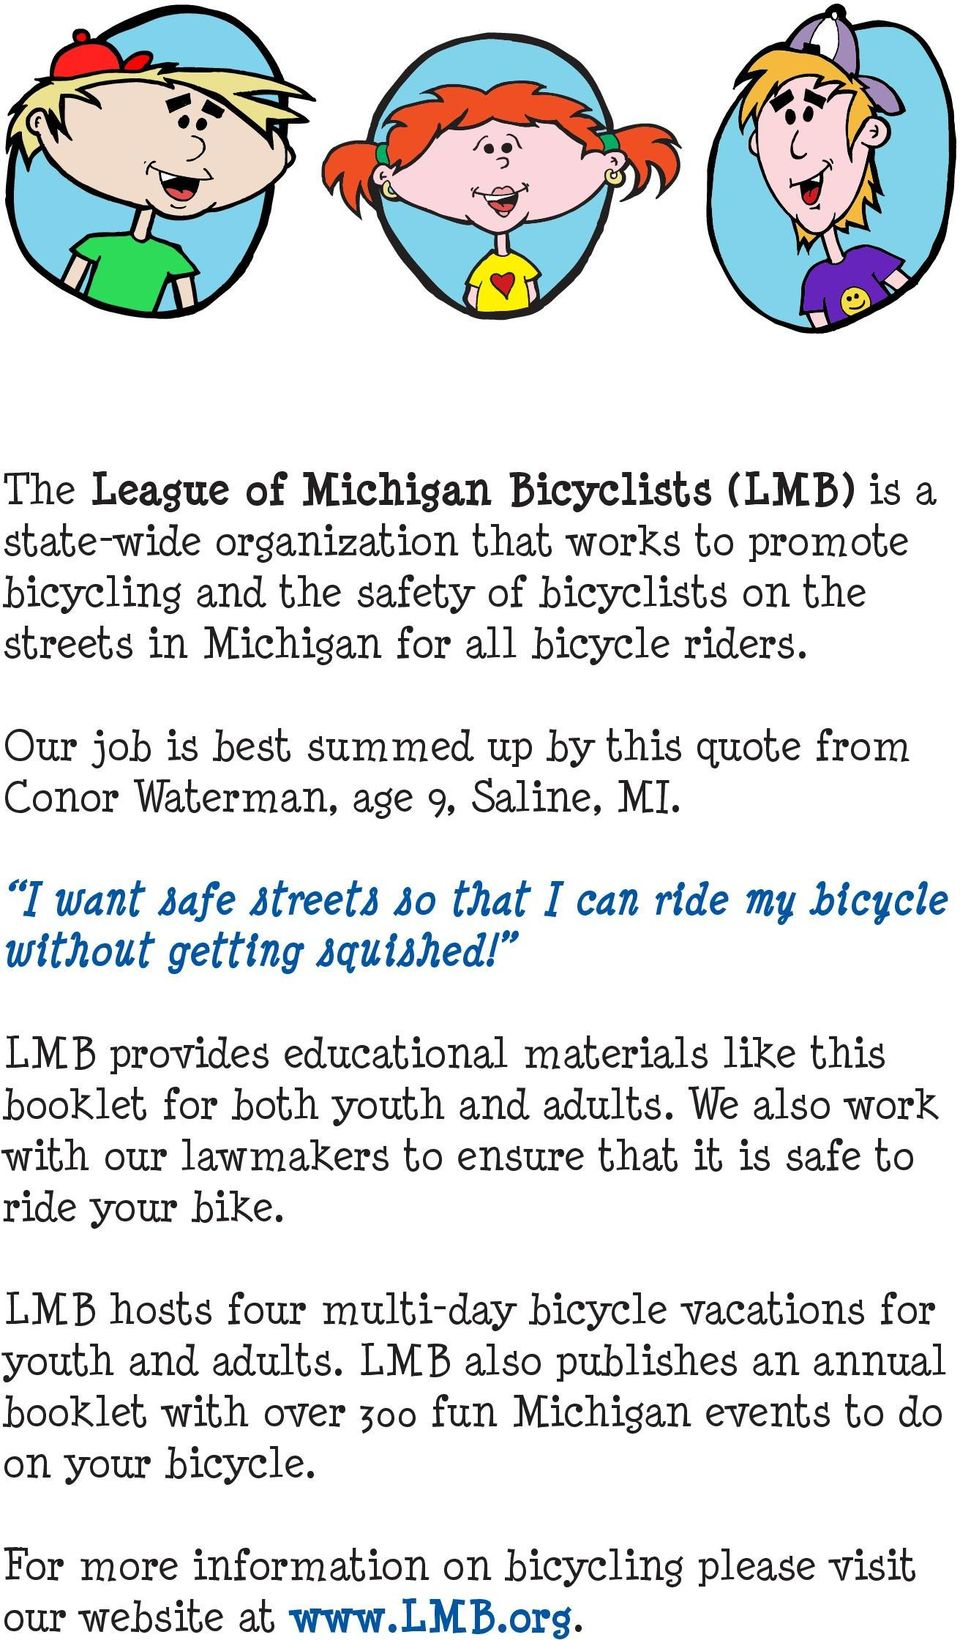 LMB provides educational materials like this booklet for both youth and adults. We also work with our lawmakers to ensure that it is safe to ride your bike.